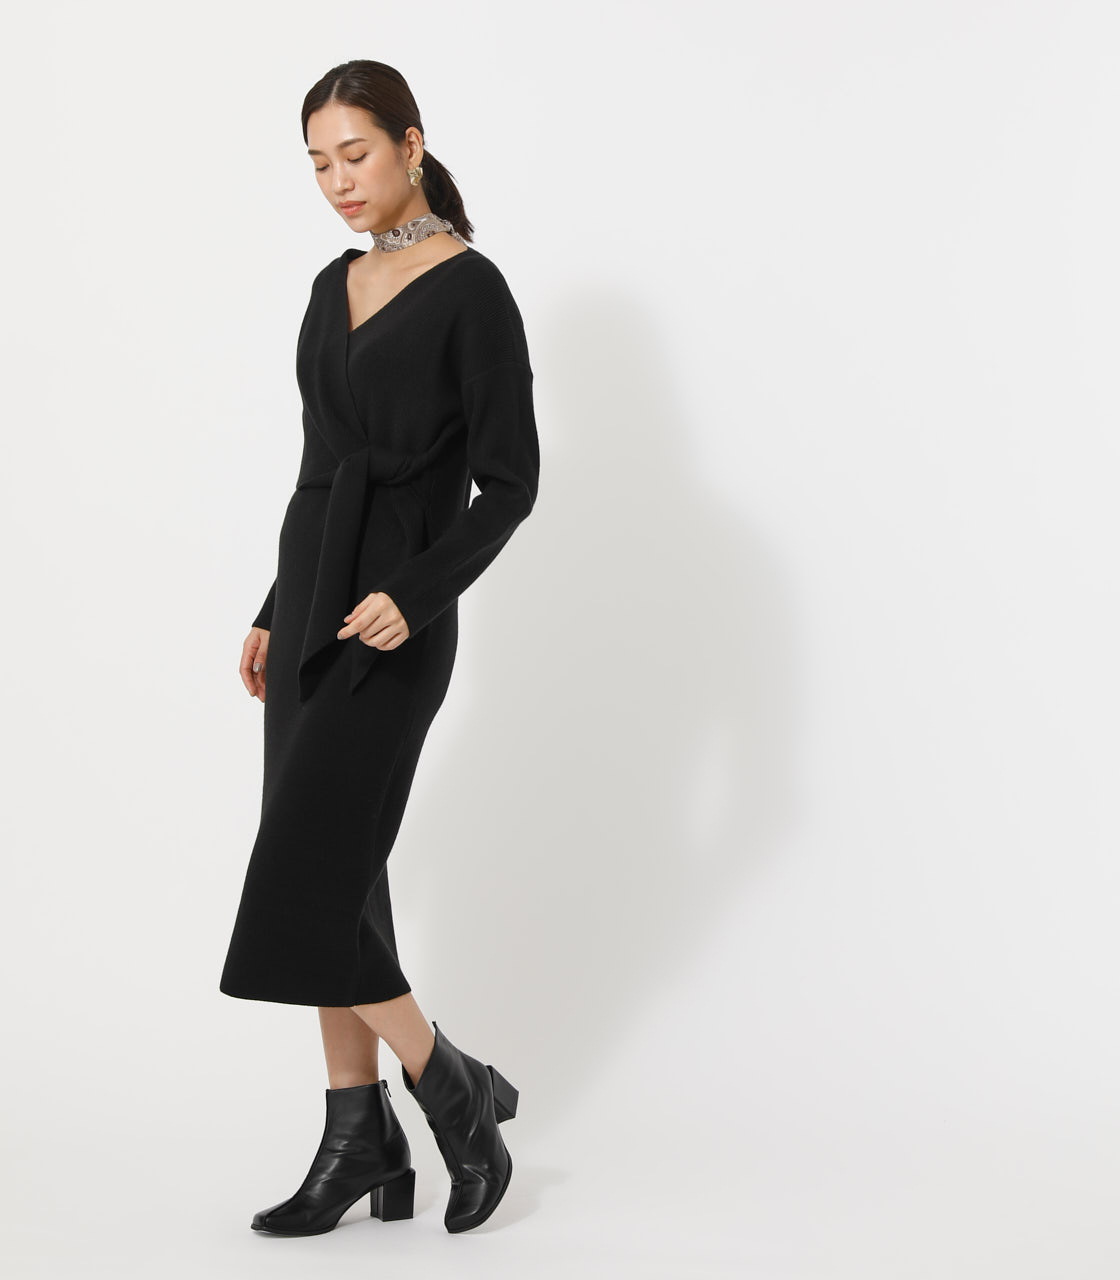 FRONT LINK KNIT ONEPIECE/フロントリンクニットワンピース 詳細画像 BLK 2